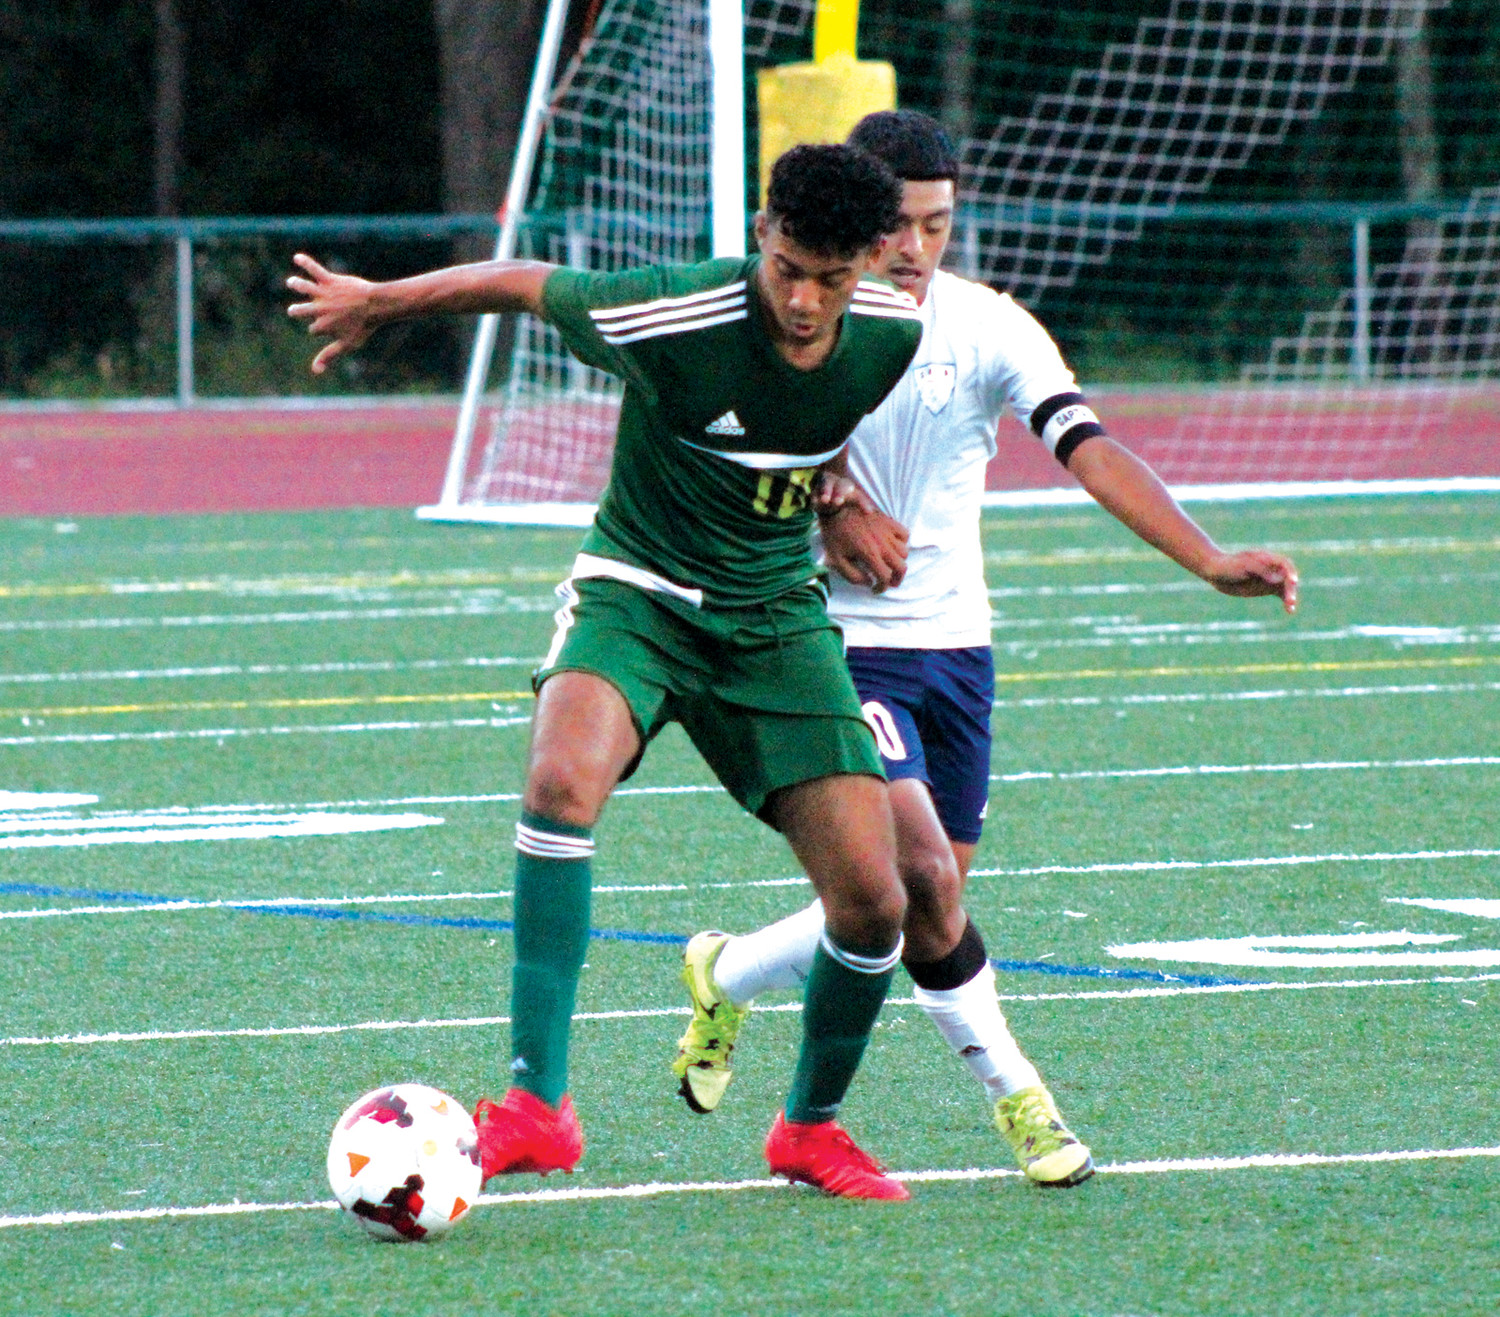 BEST FOOT FORWARD: Bishop Hendricken's Kevin Torreco works past a Shea defender.